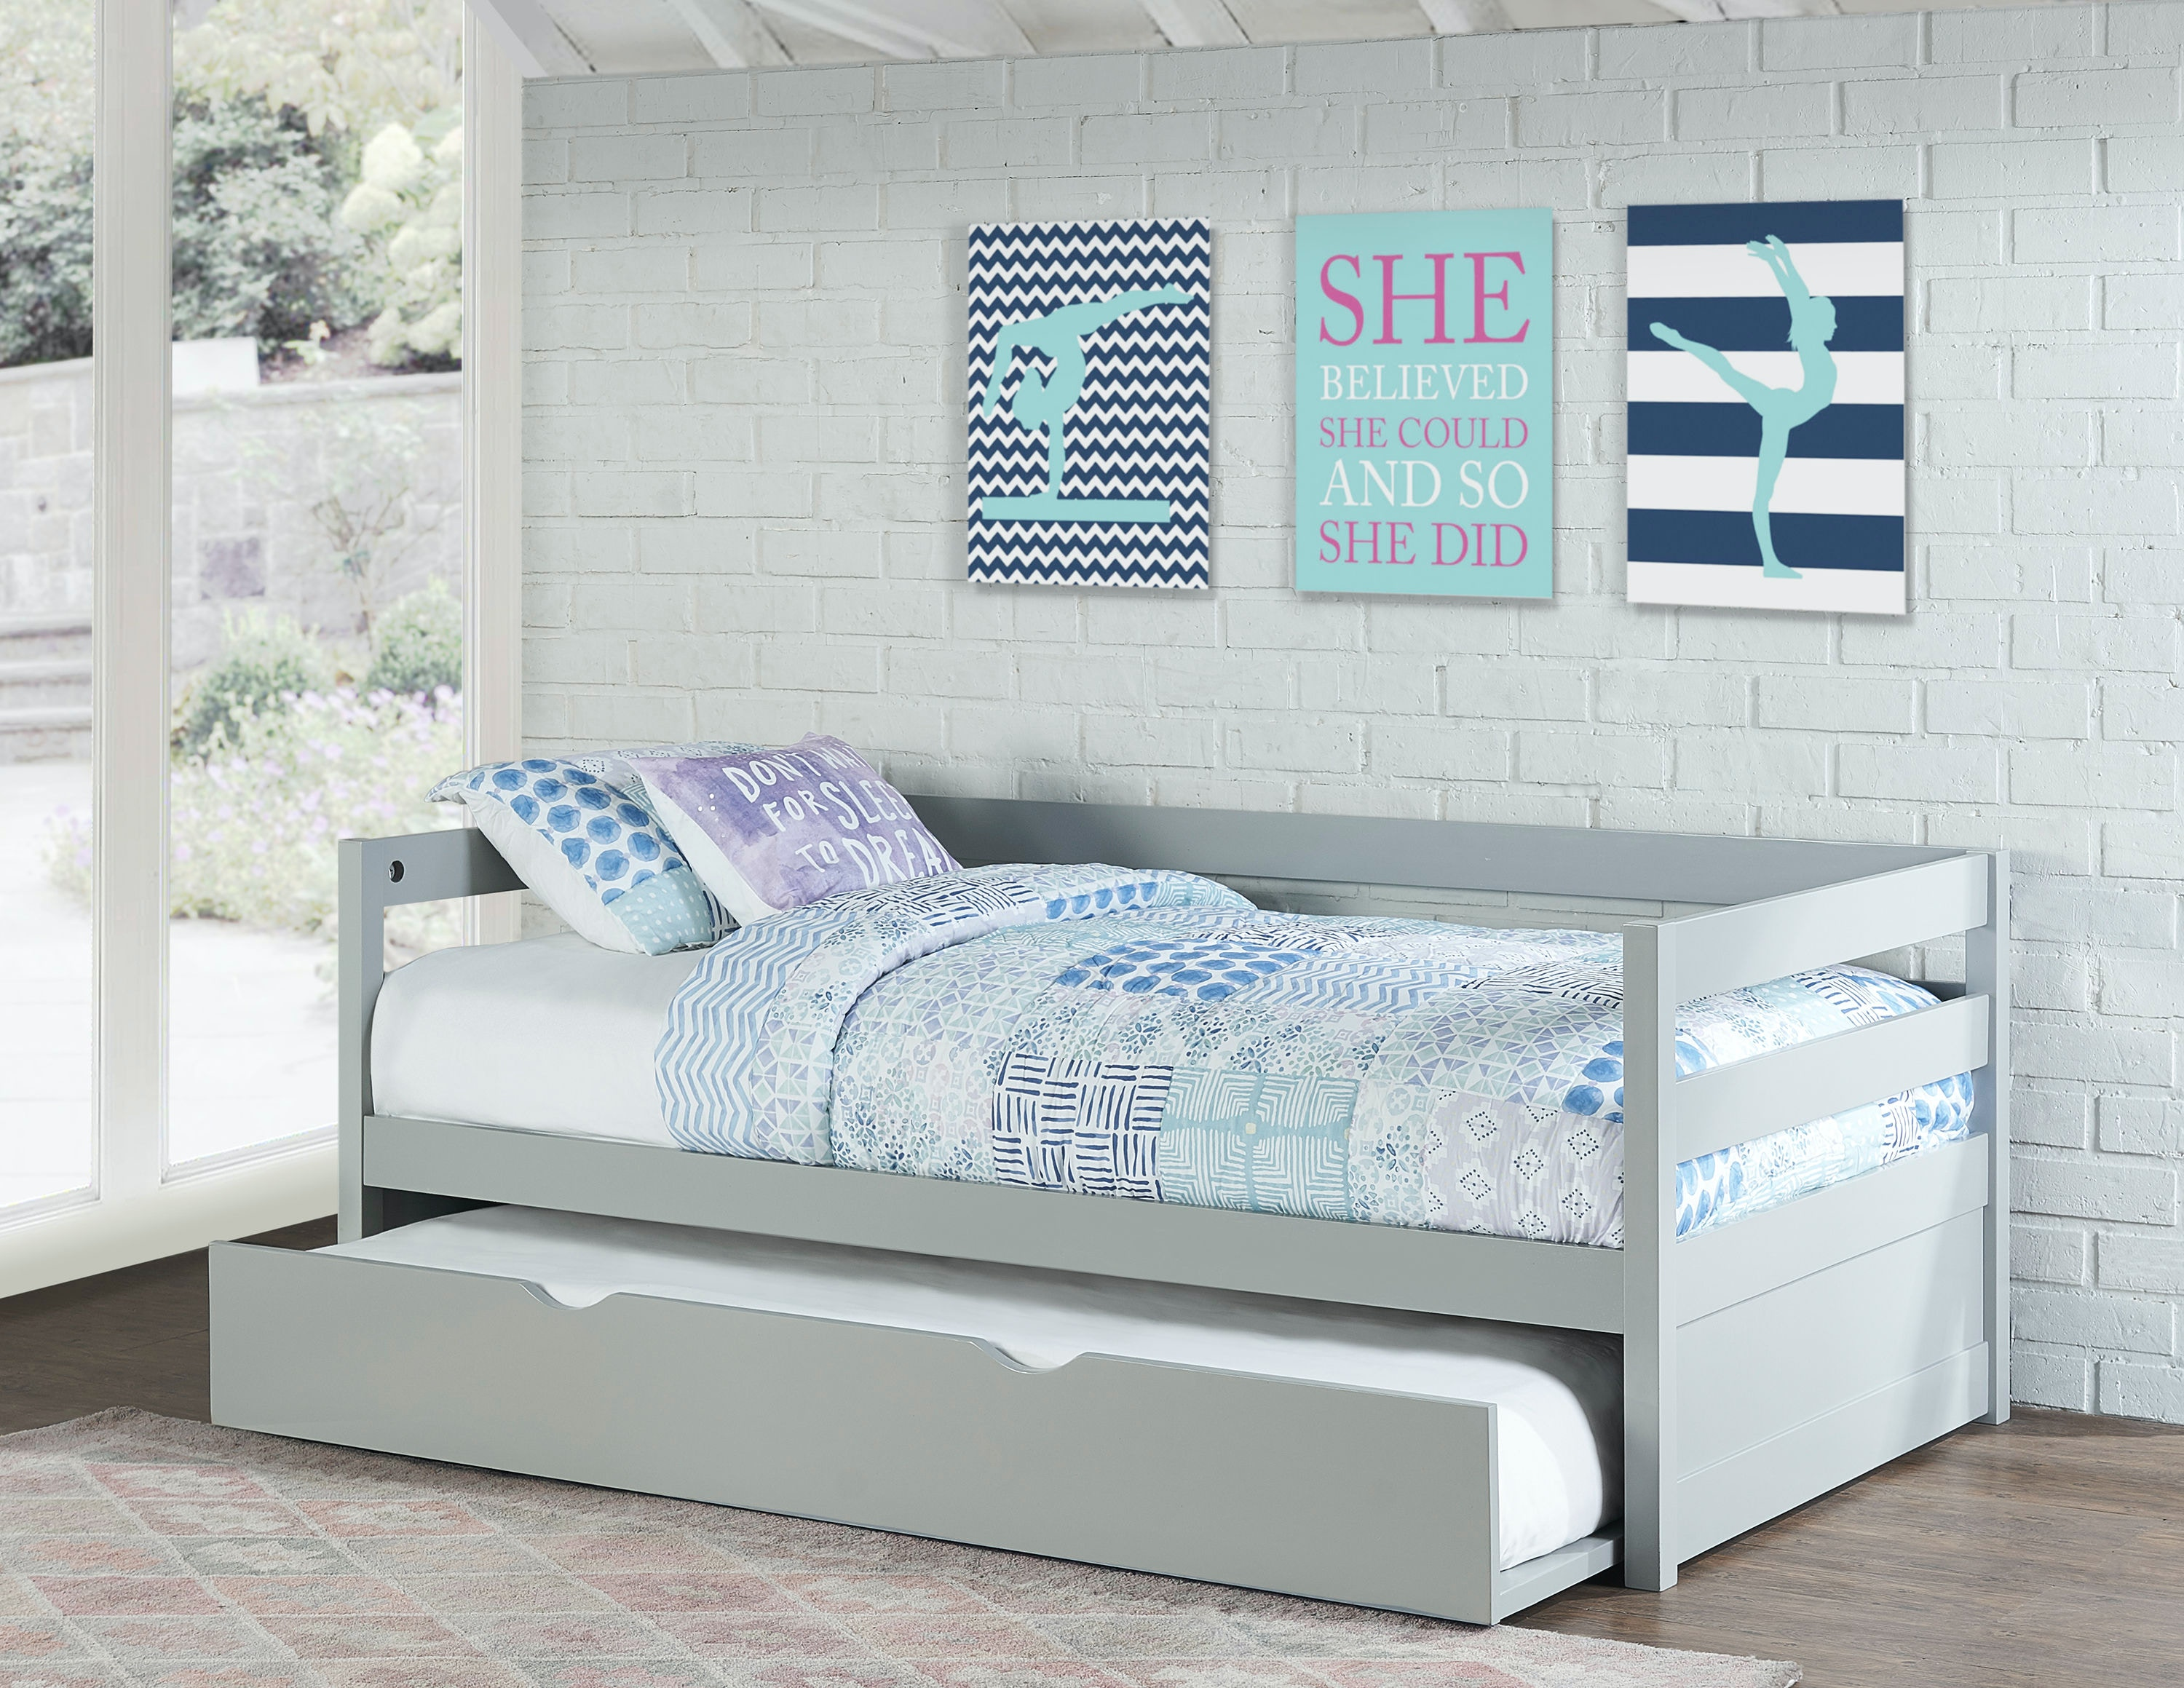 Daybed for teen